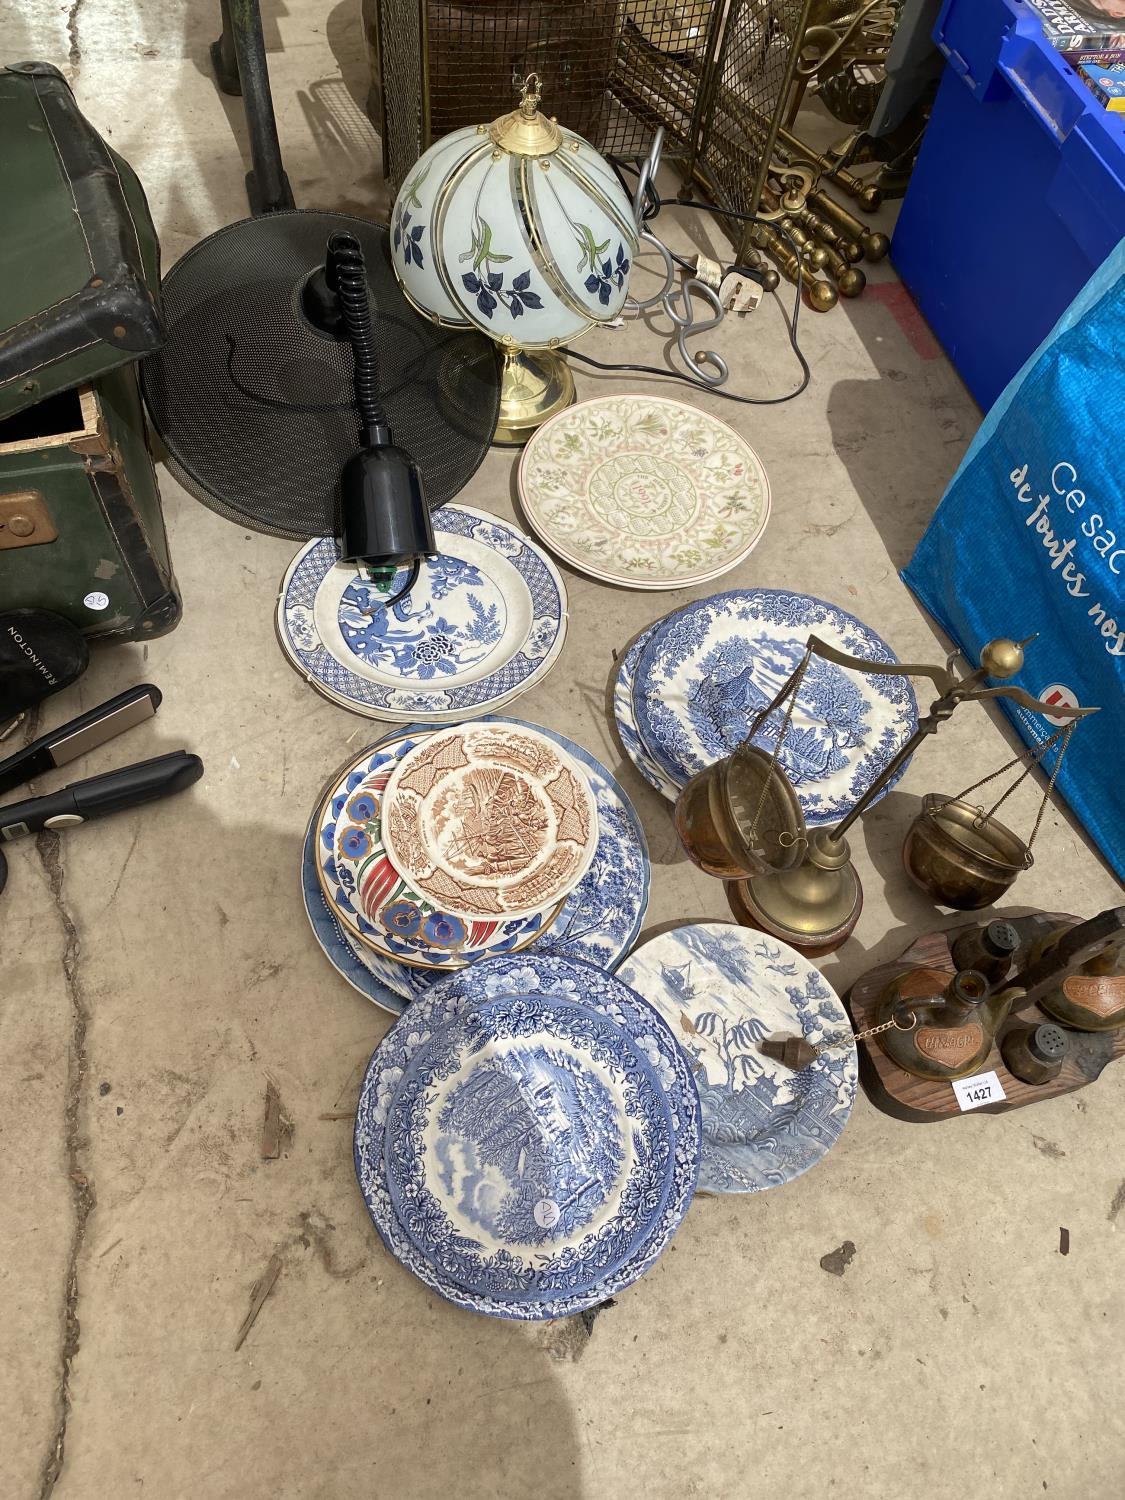 AN ASSORTMENT OF ITEMS TO INCLUDE BLUE AND WHITE CERAMICS PLATES, A GLASS LAMP AND BALANCE SCALES - Image 4 of 4